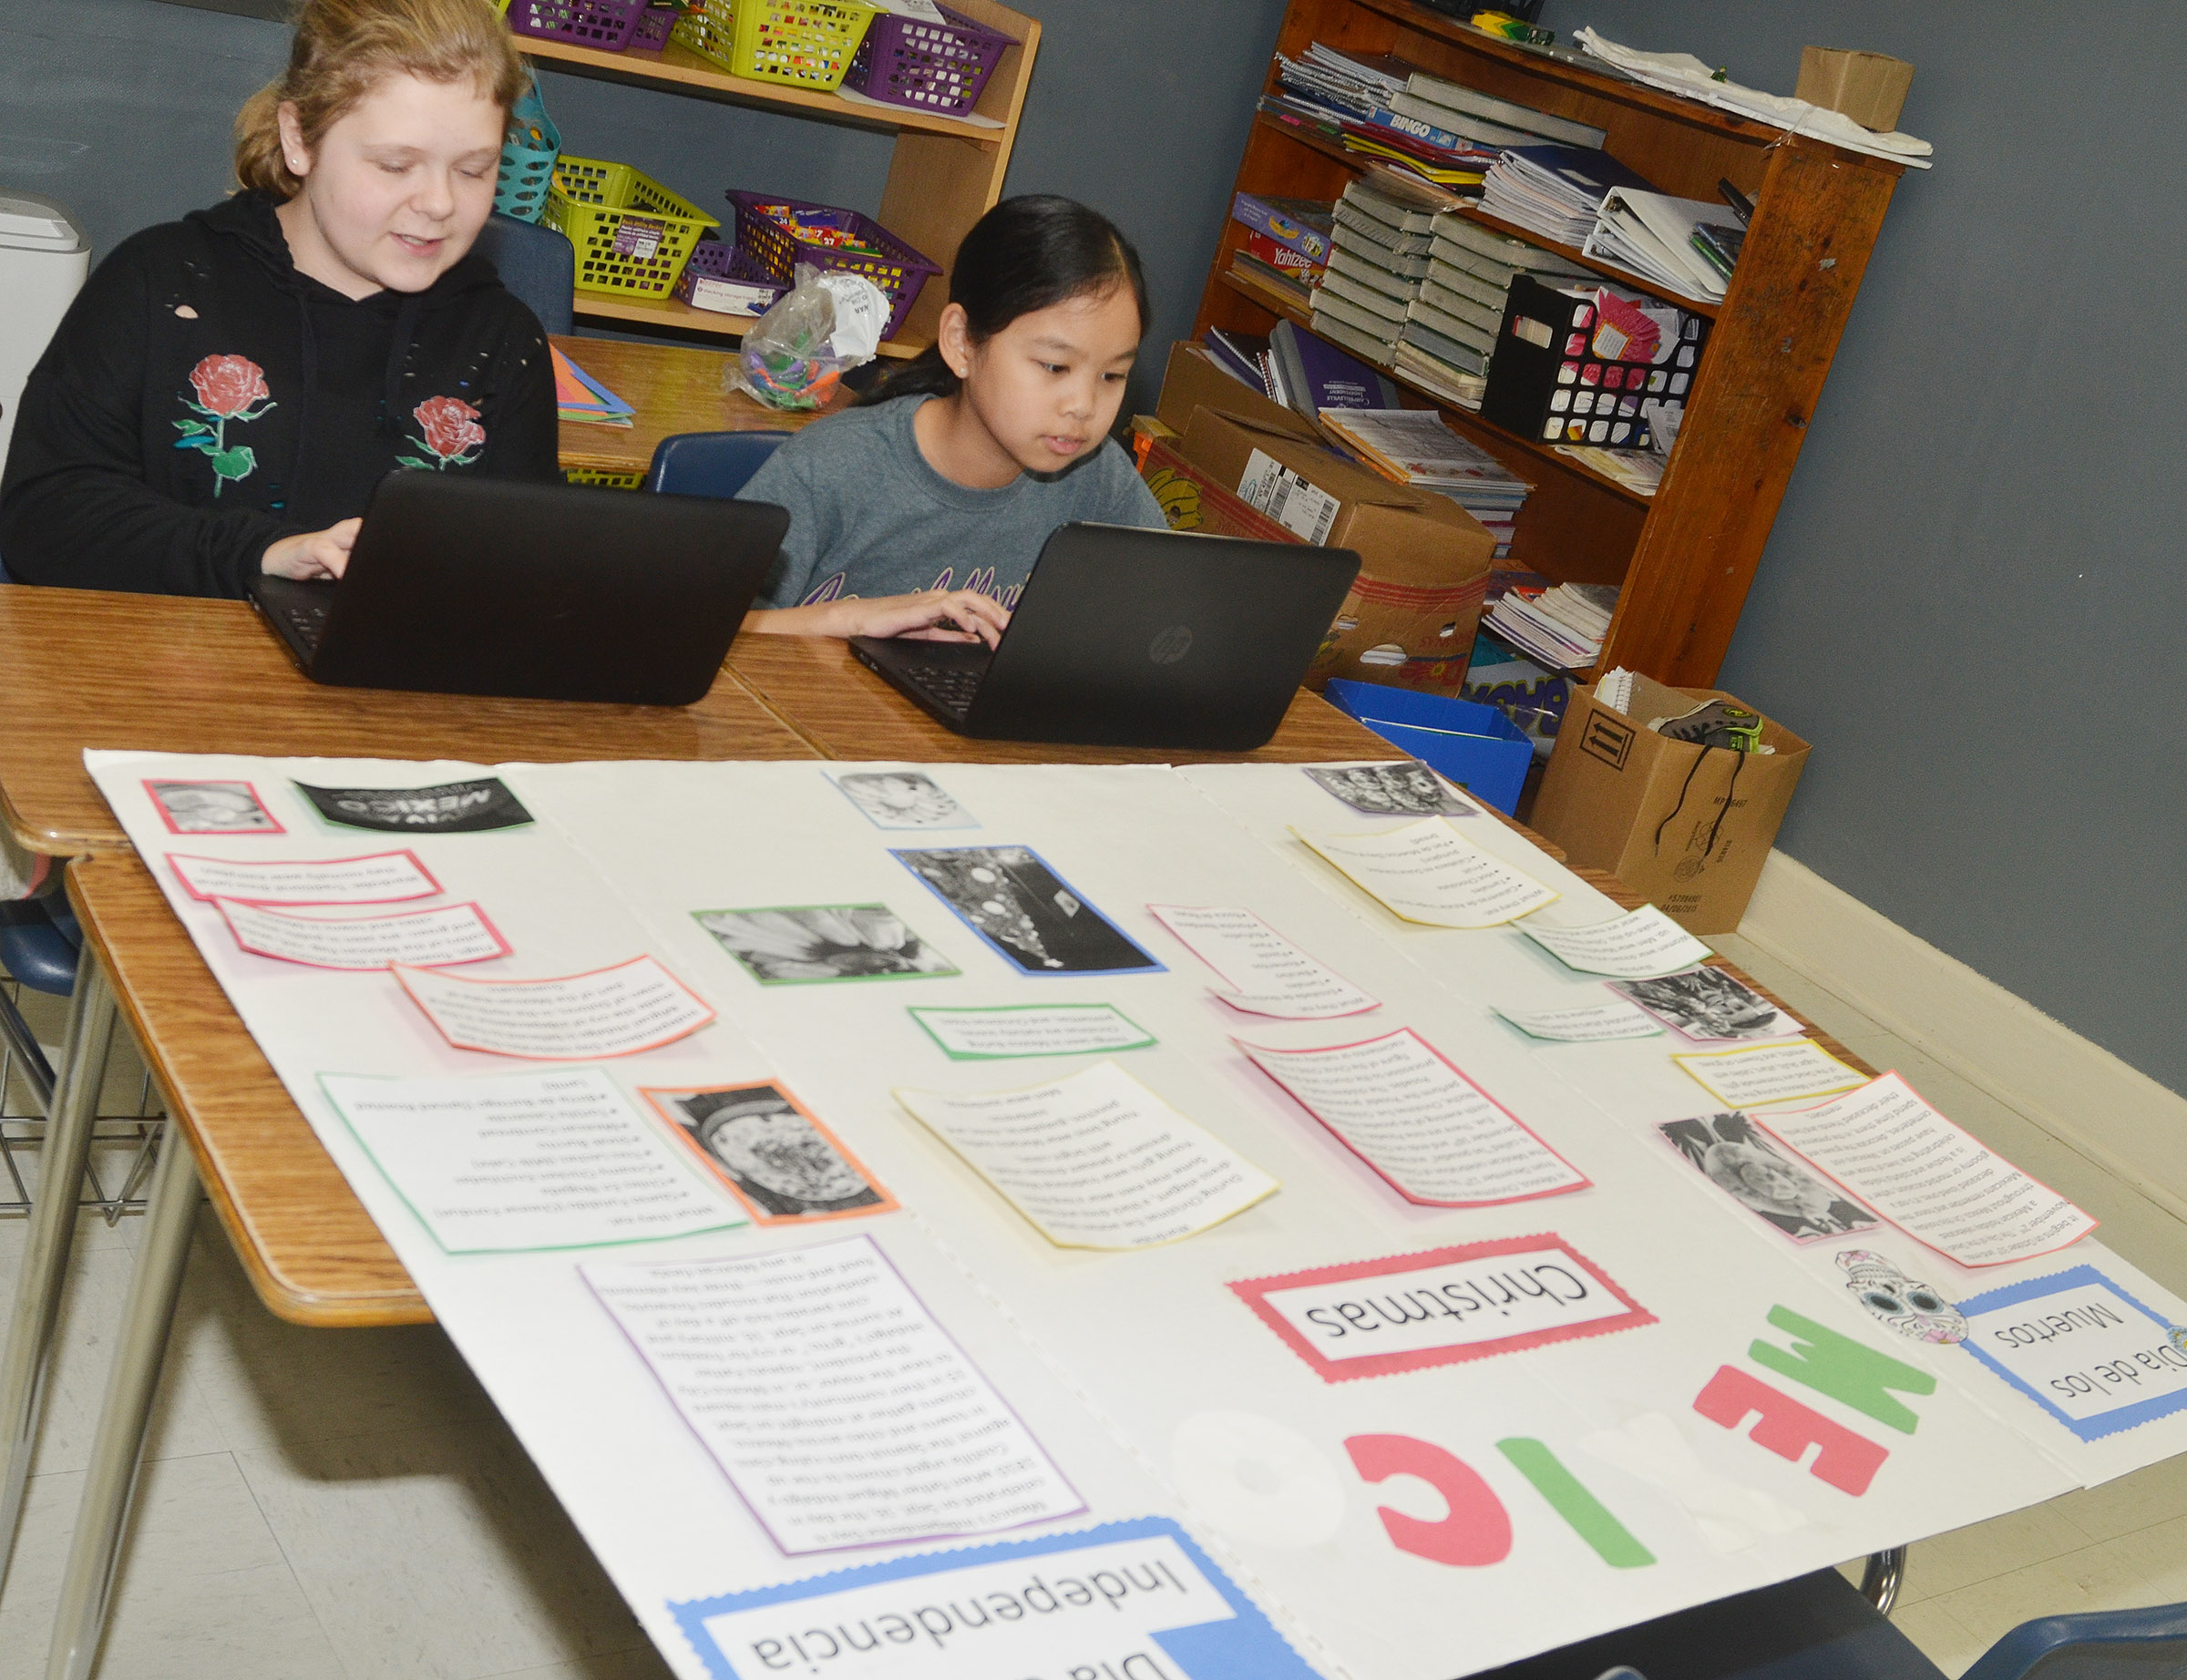 CMS sixth-graders Alexis Sharp, at left, and Angelica Seng work on a class project.